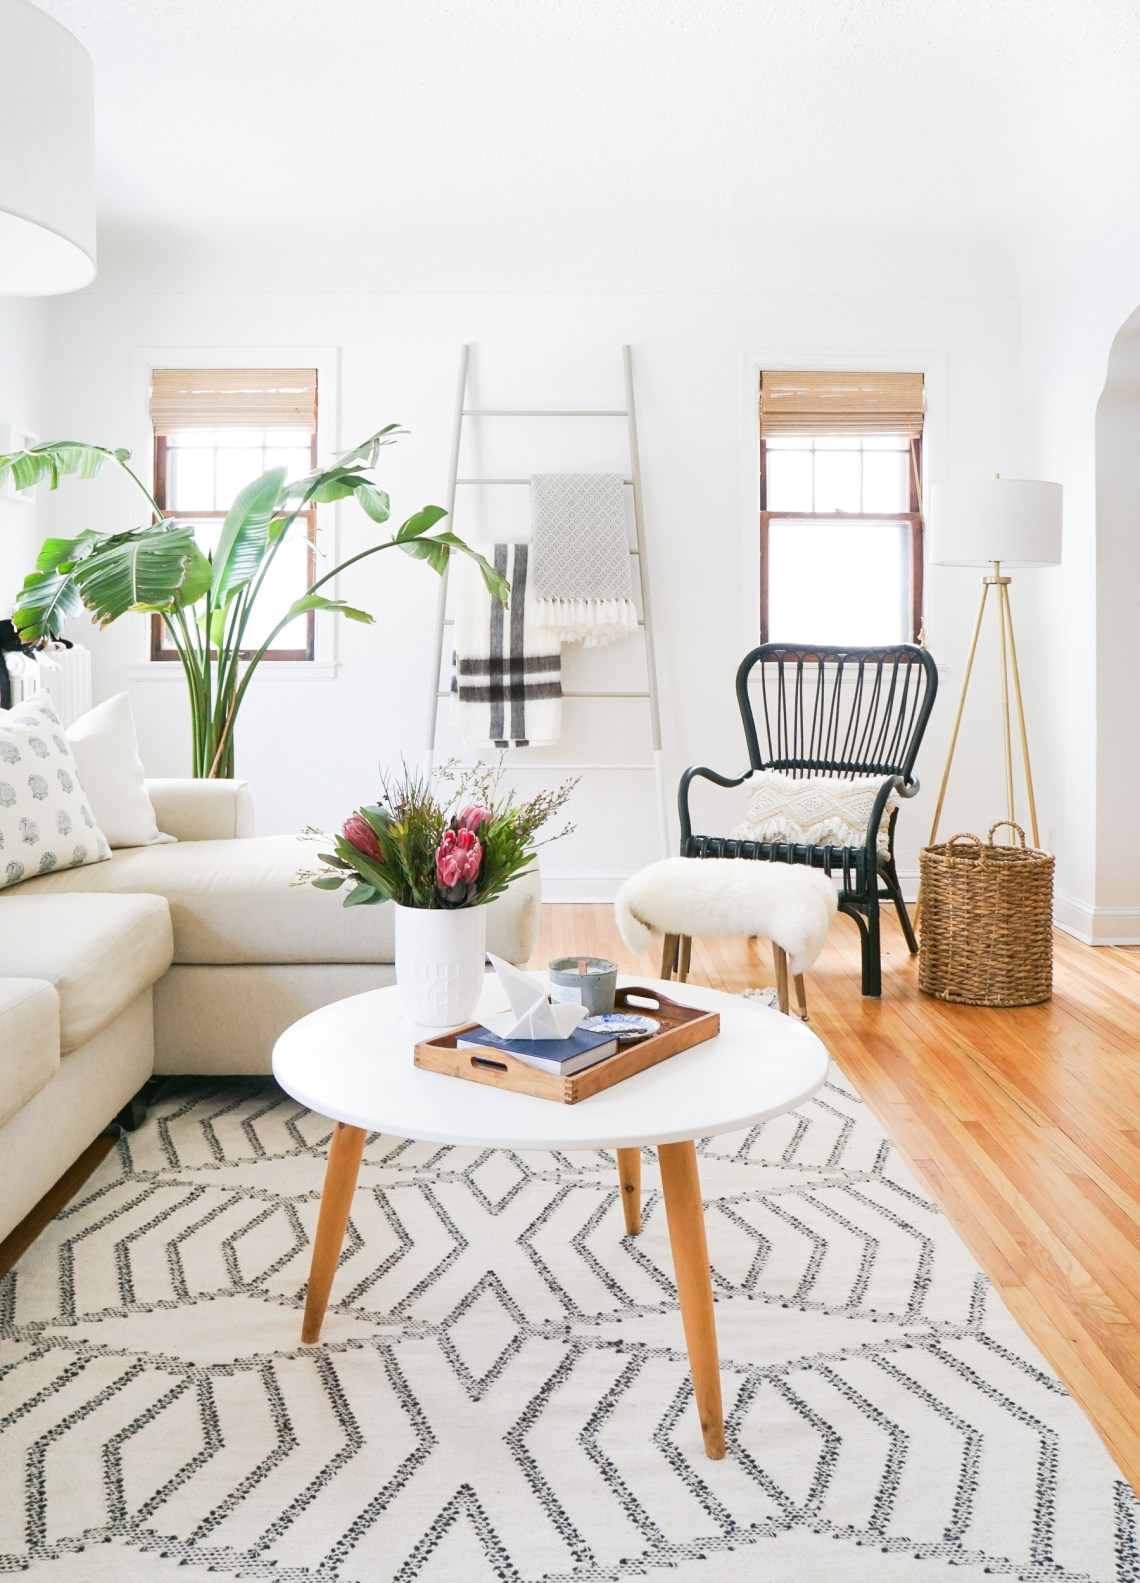 Find out how to clean your wool vintage rug from rug expert, Kim Gunther from Woven Abode. Click for deets!